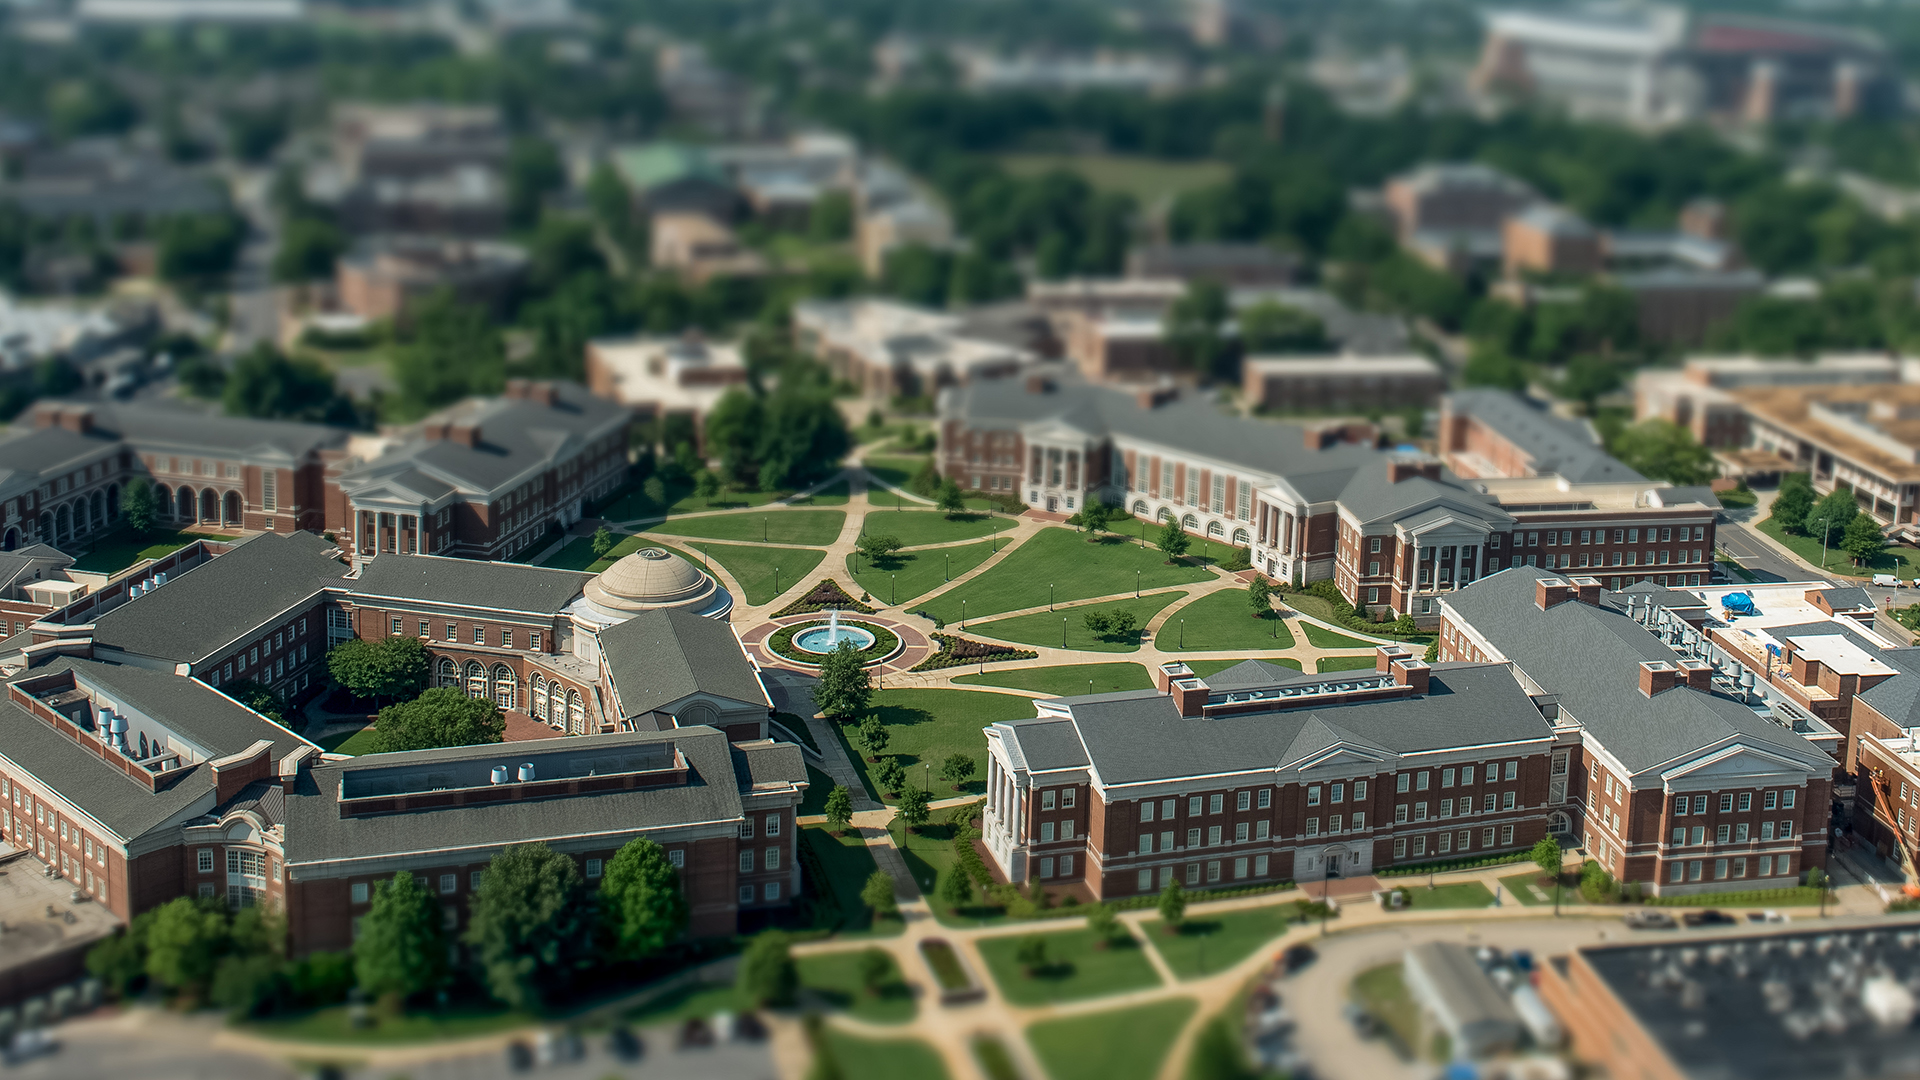 Tilt shift photo of the Engineering campus area